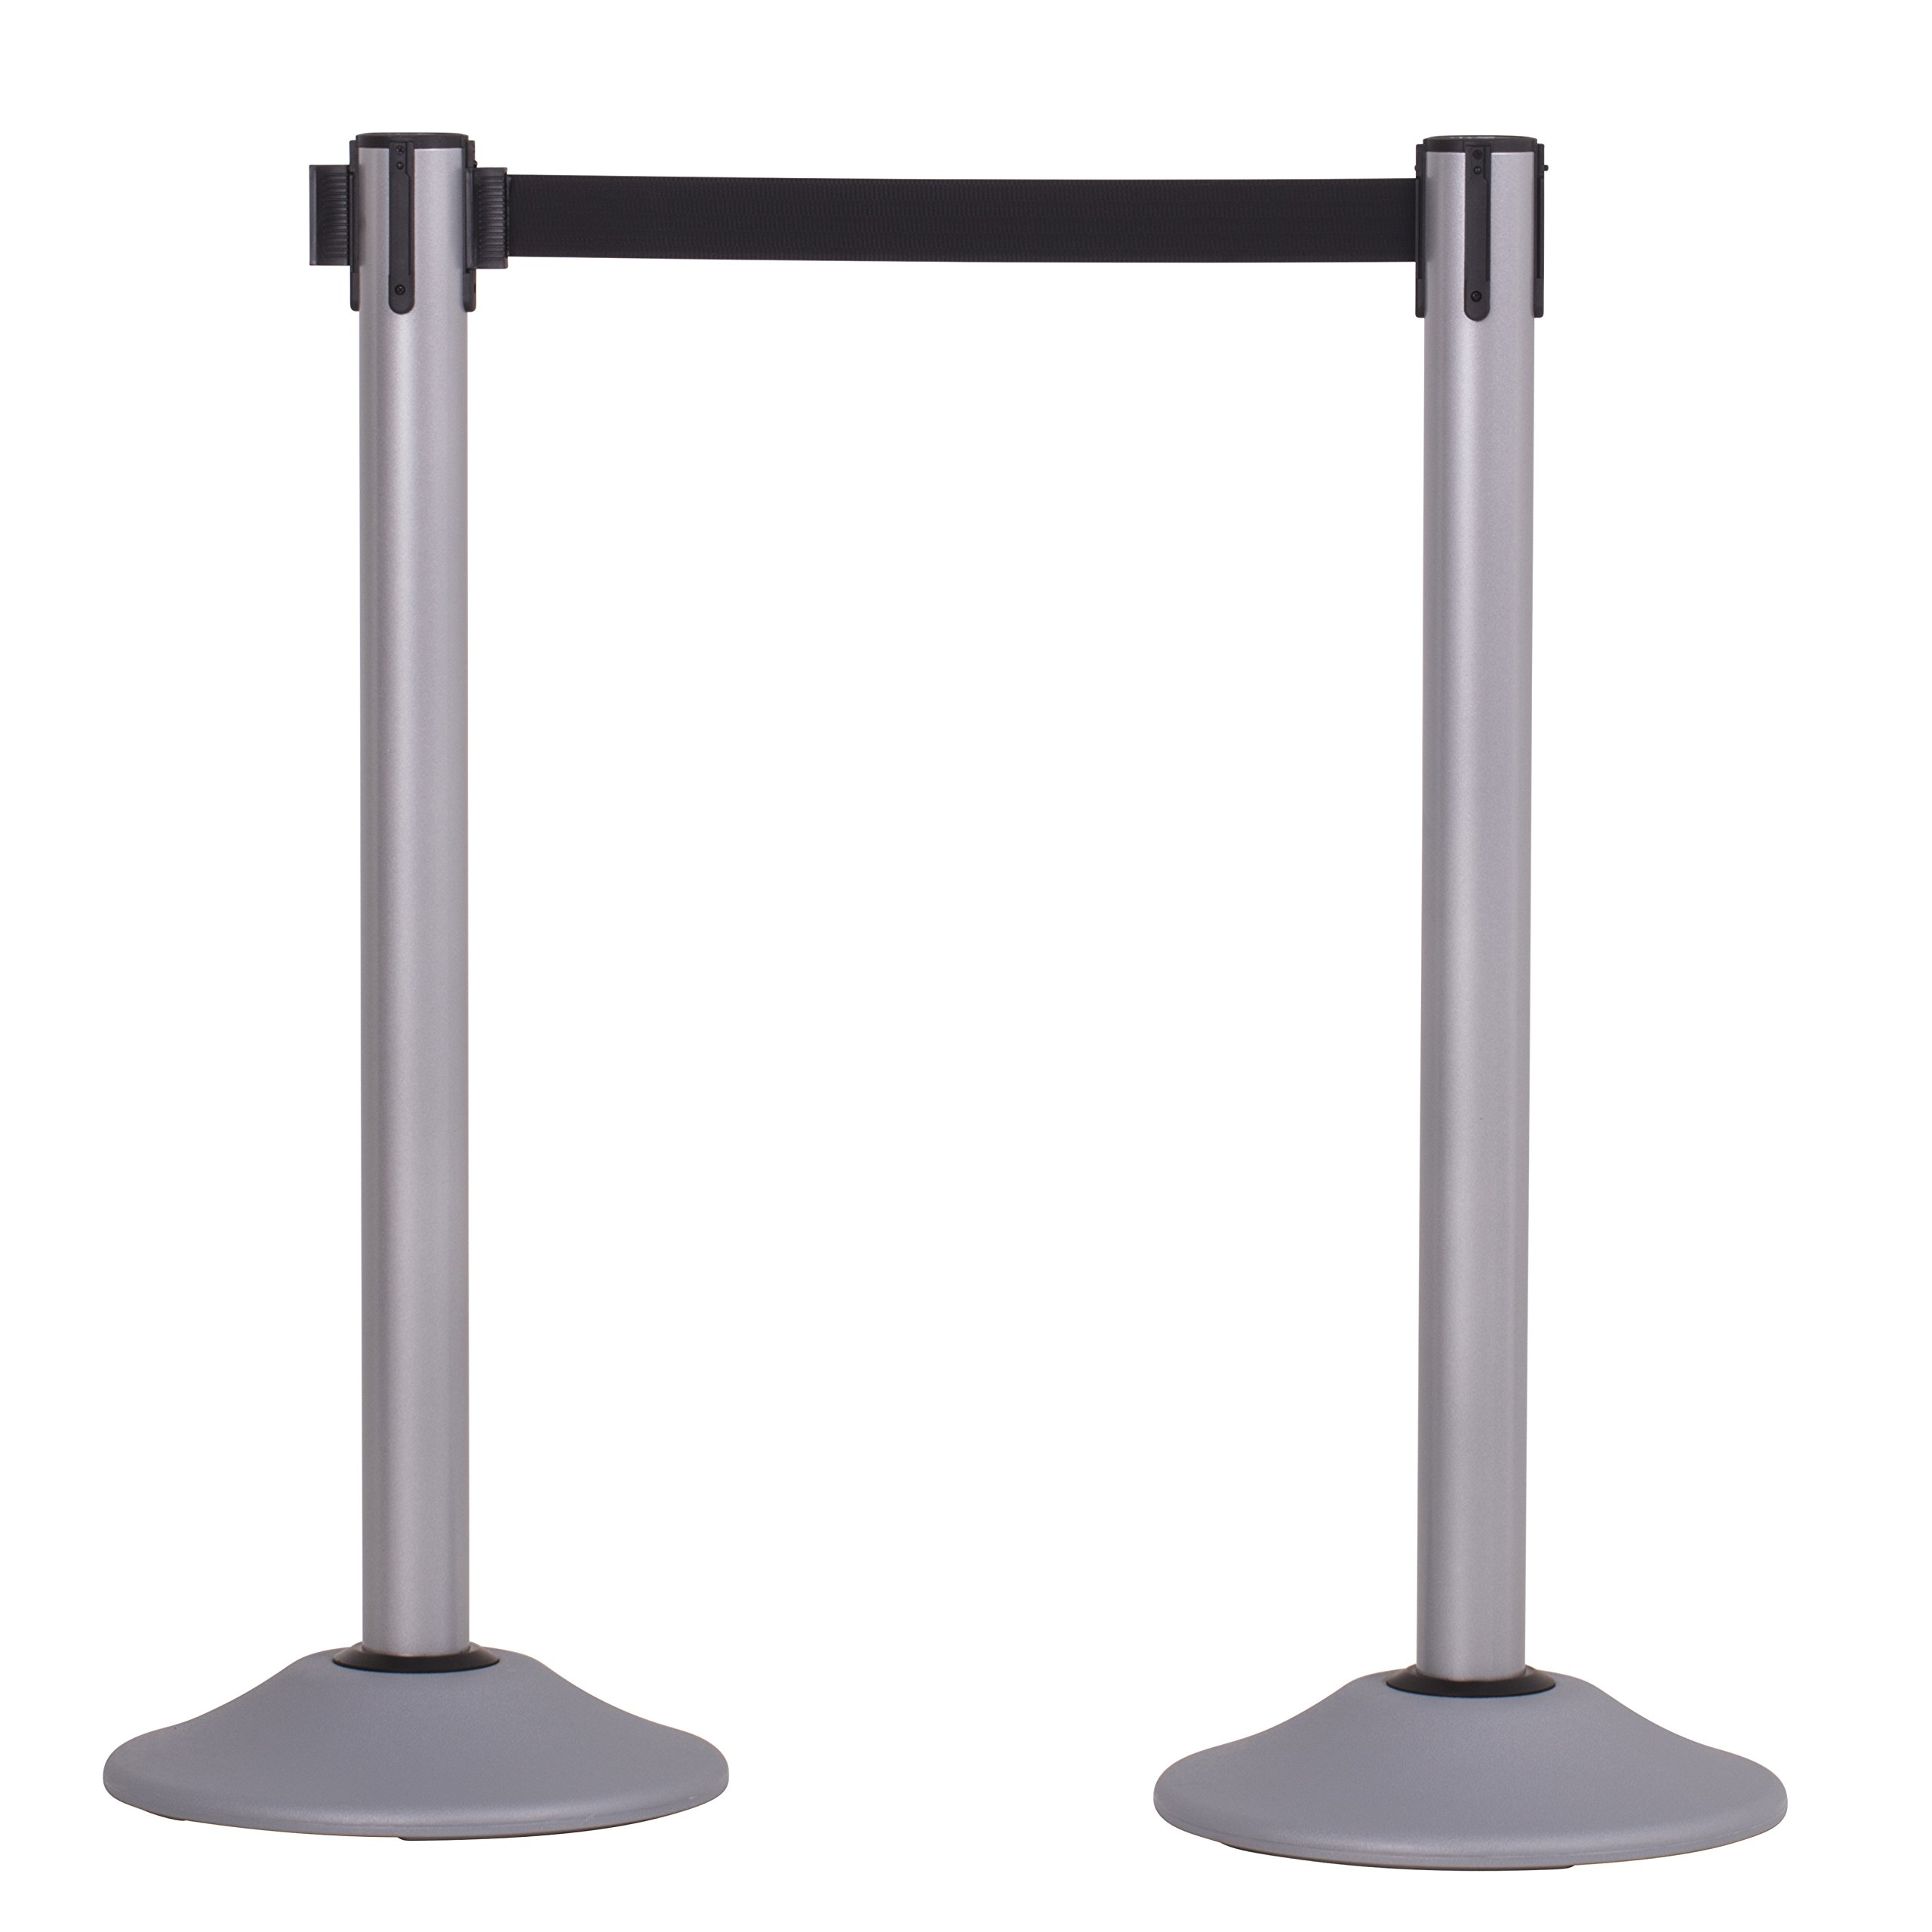 US Weight Heavy Duty Premium Steel Stanchion with Extended 13-Foot Retractable Belt - Silver by US Weight